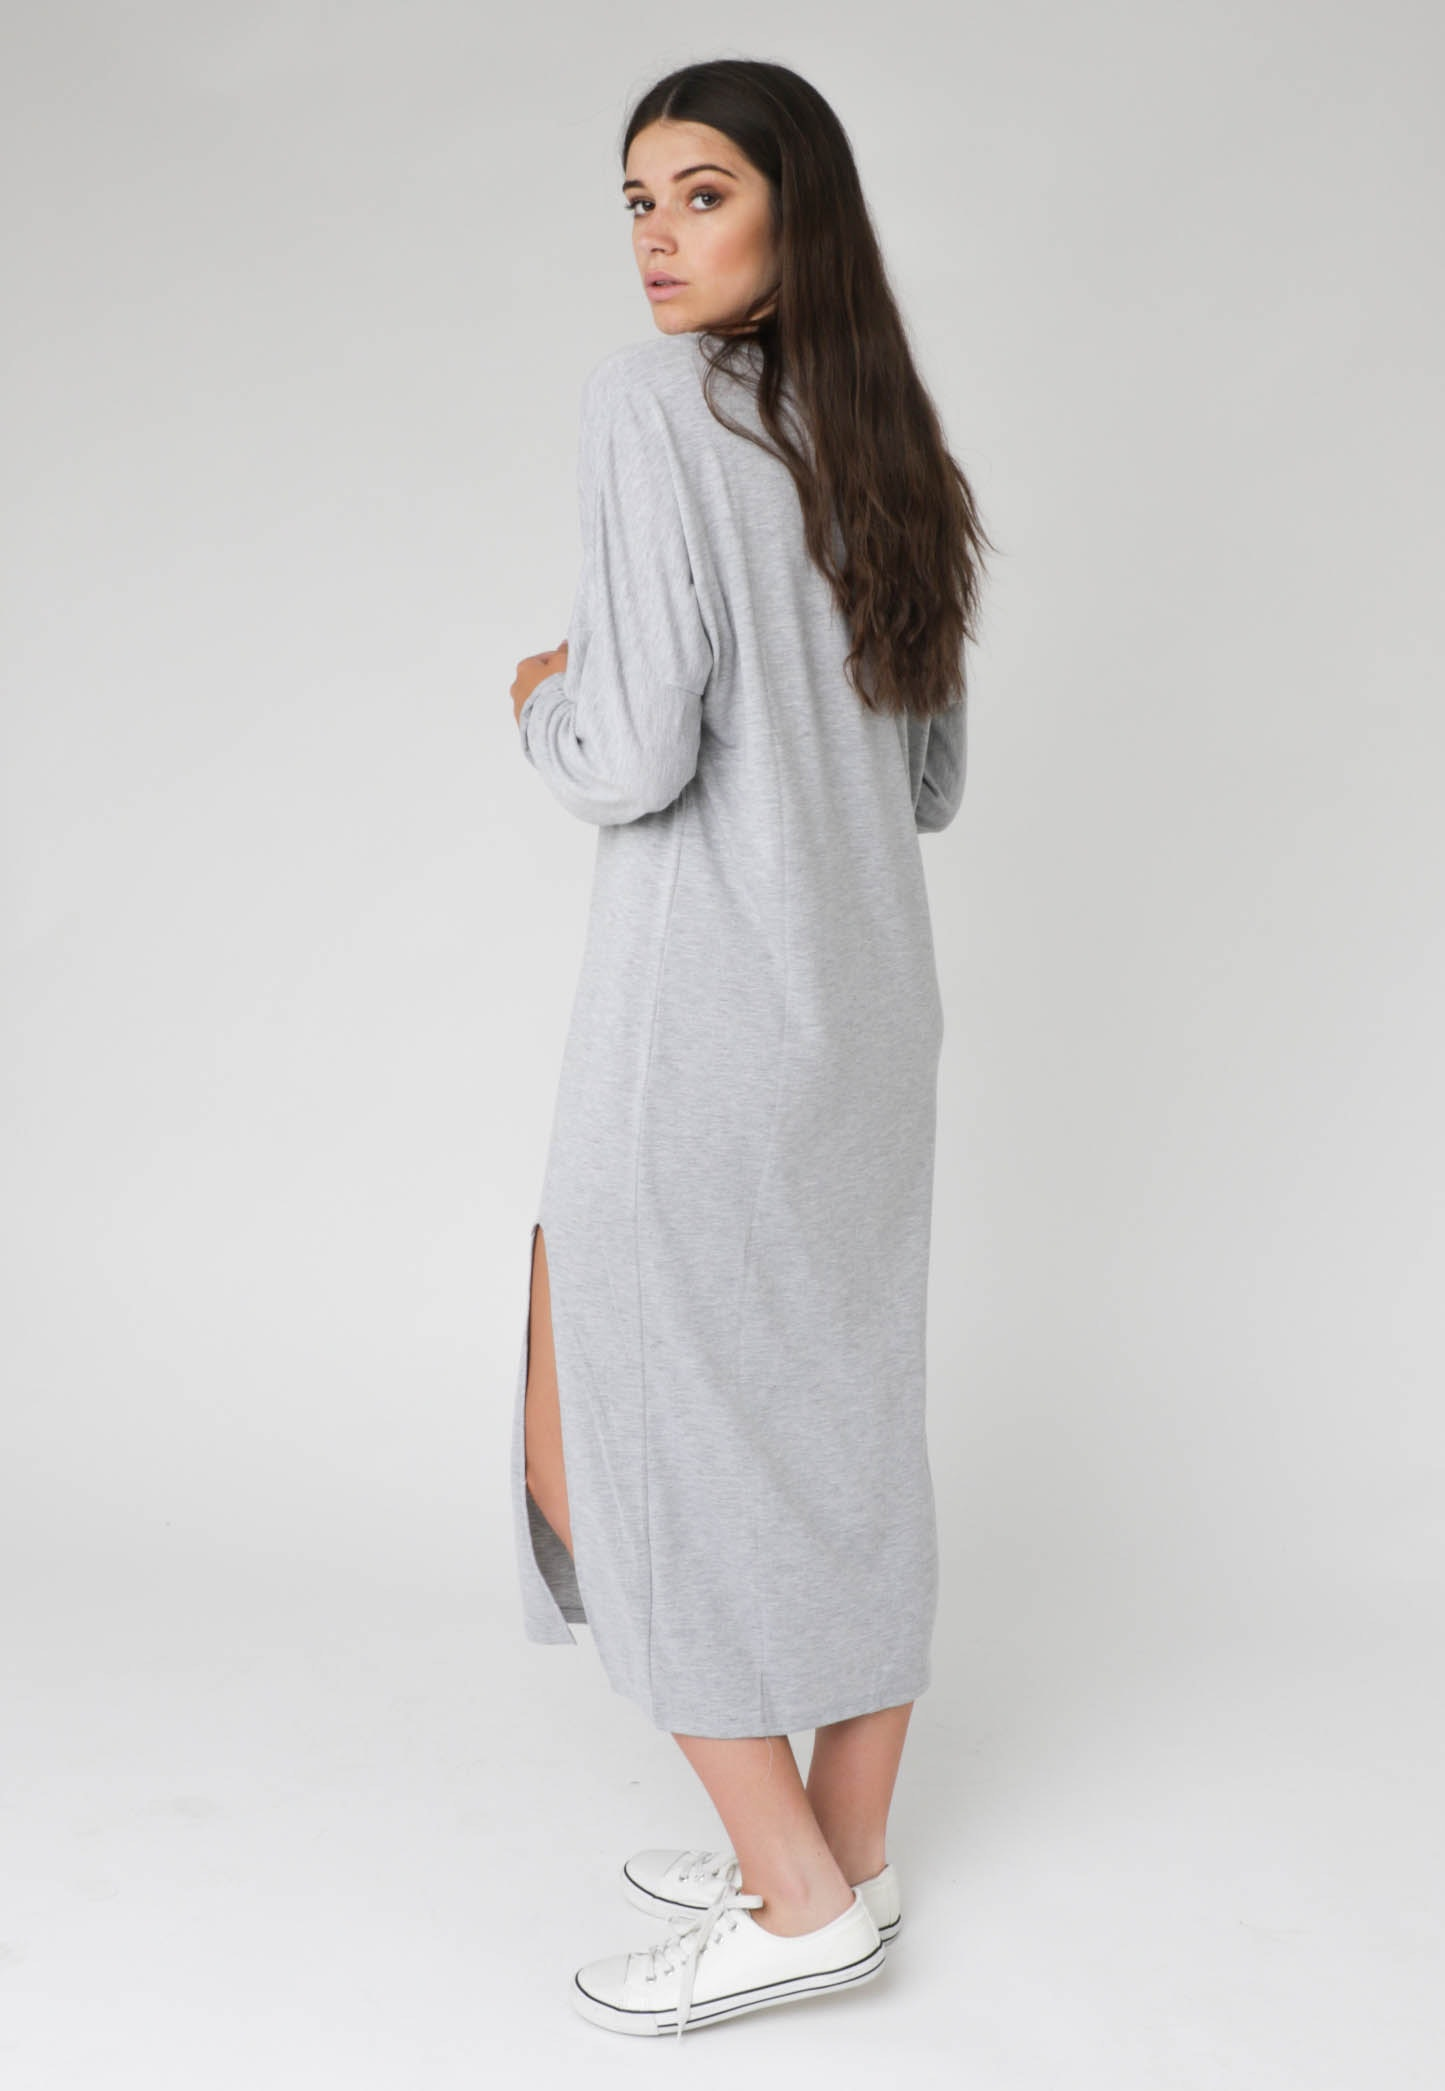 Silent Theory - Cross Your Heart Dress - Grey Marle